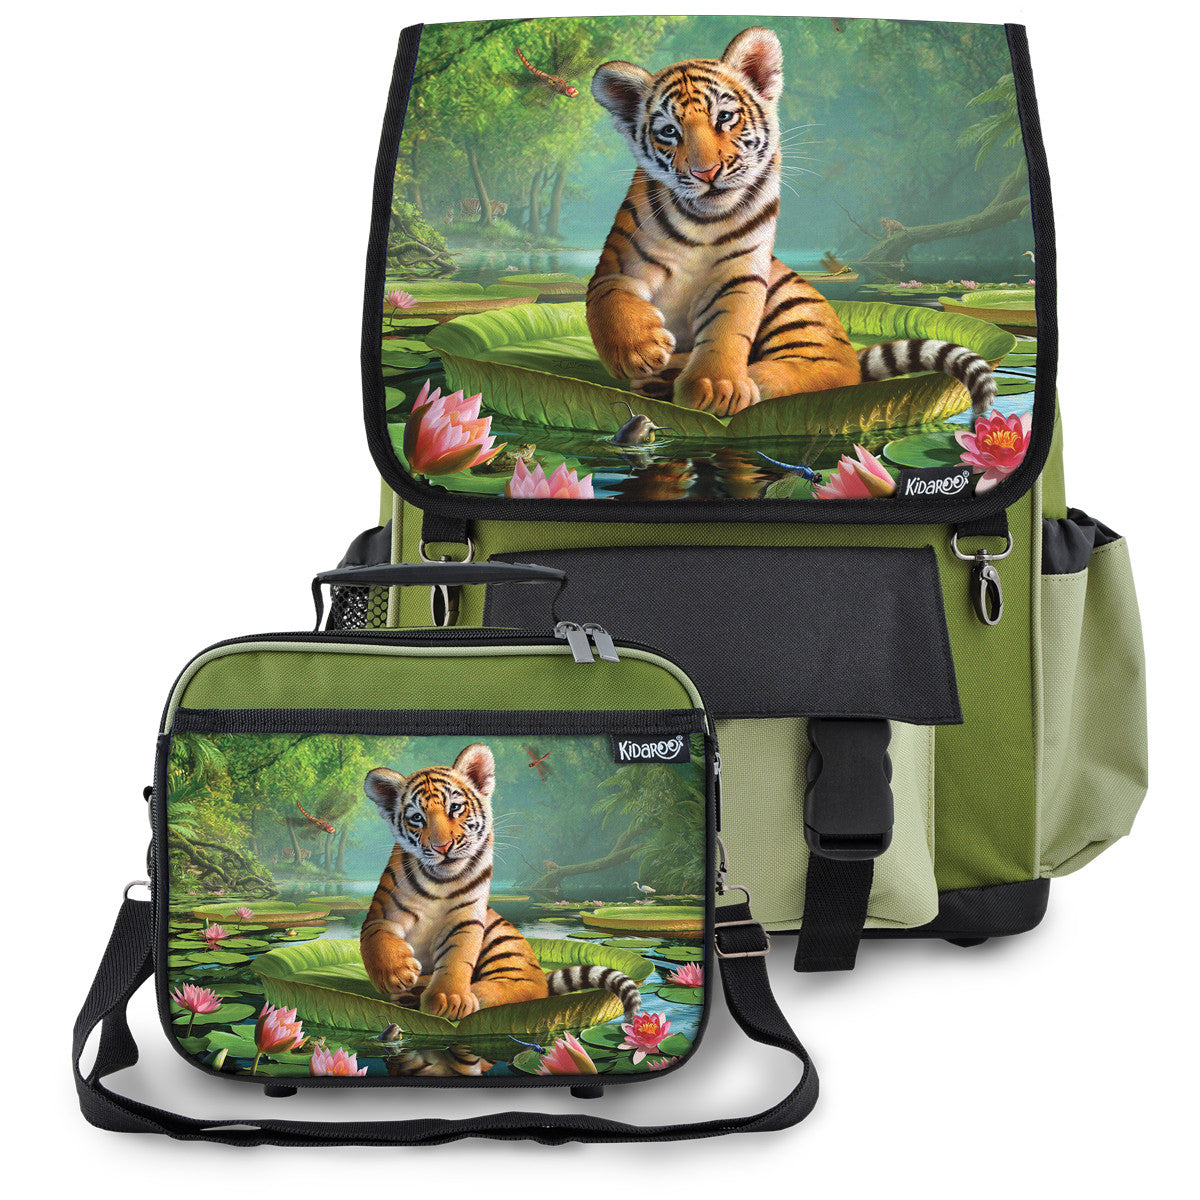 Kidaroo Khaki Green Tiger Cub On Lily Pad School Backpack & Lunchbox Set for Boys, Girls, Kids